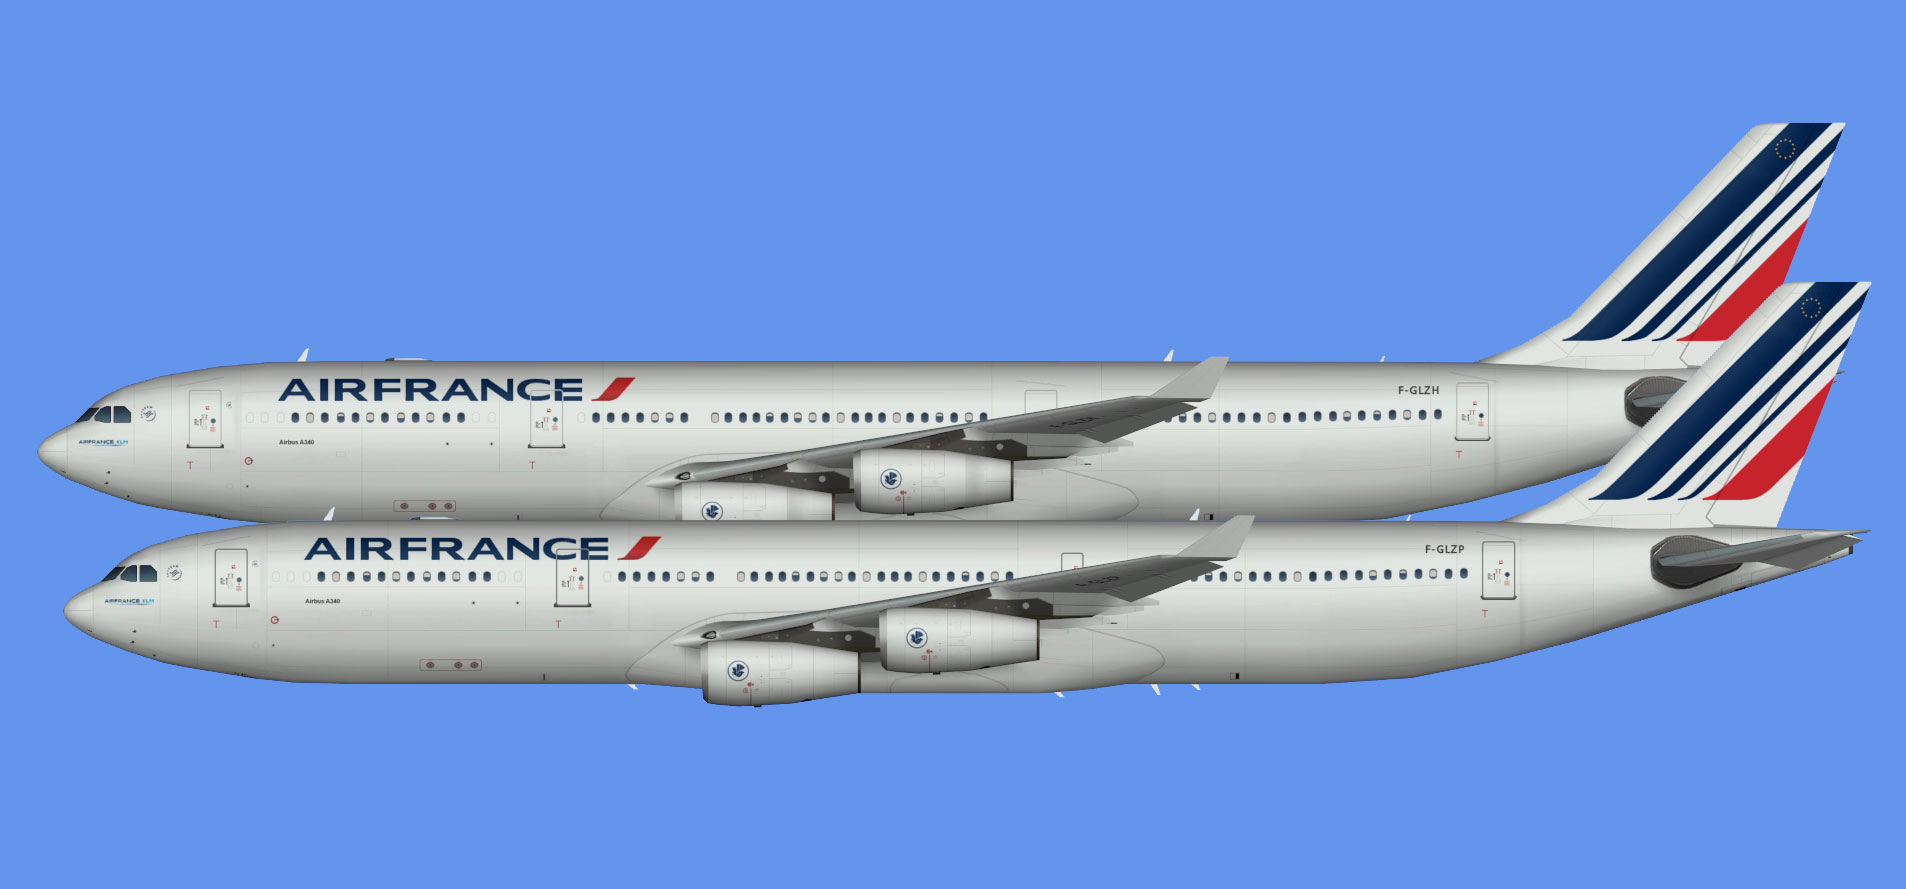 Air France A340 fleet (TFS)